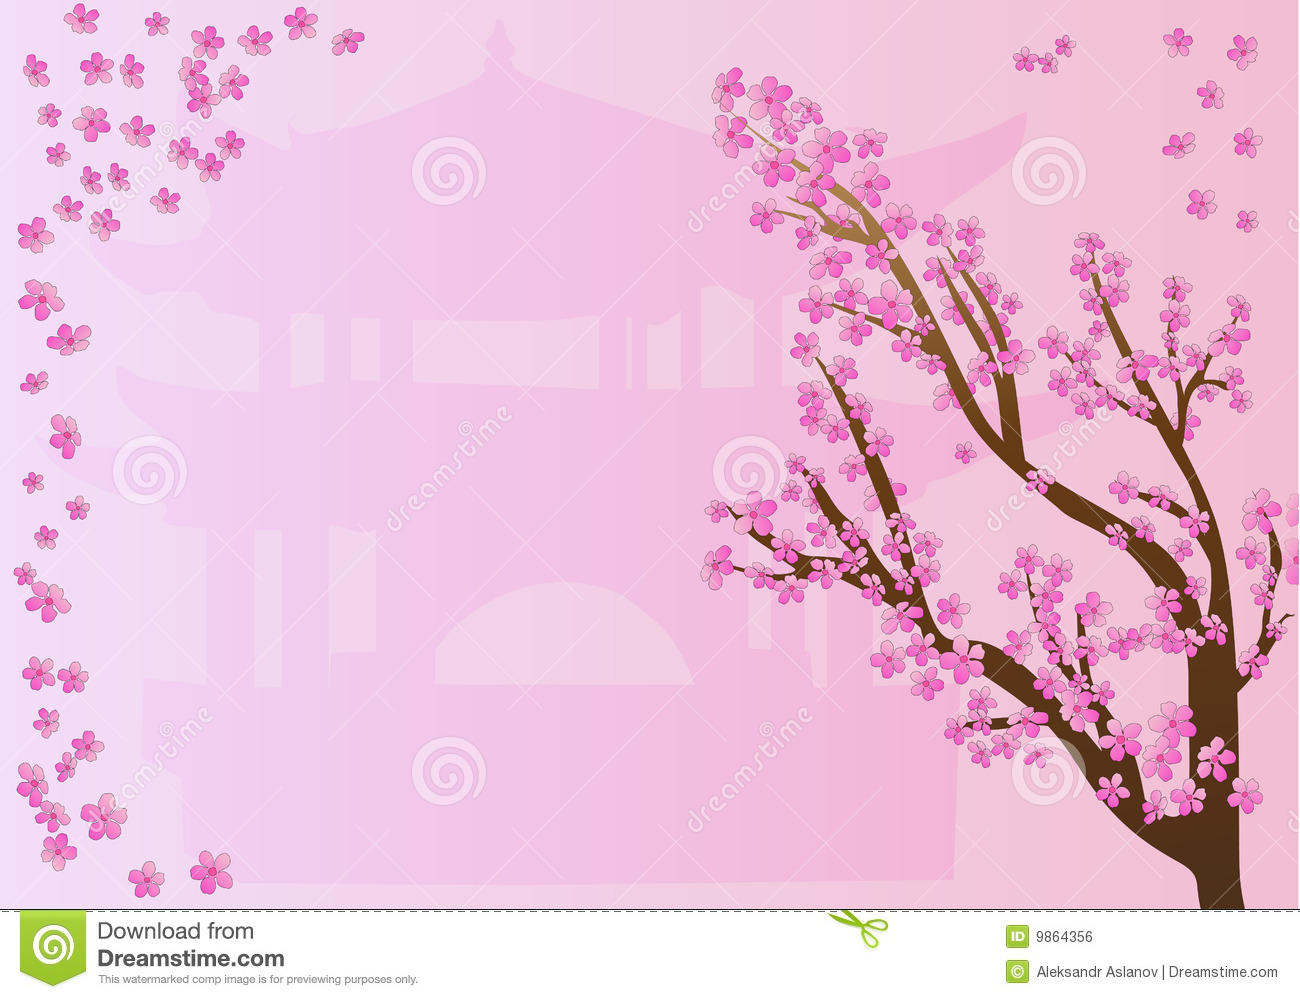 Baby Girl Wallpaper Borders Pink And Purple Cherry Blossoms On Pink Design Stock Illustration